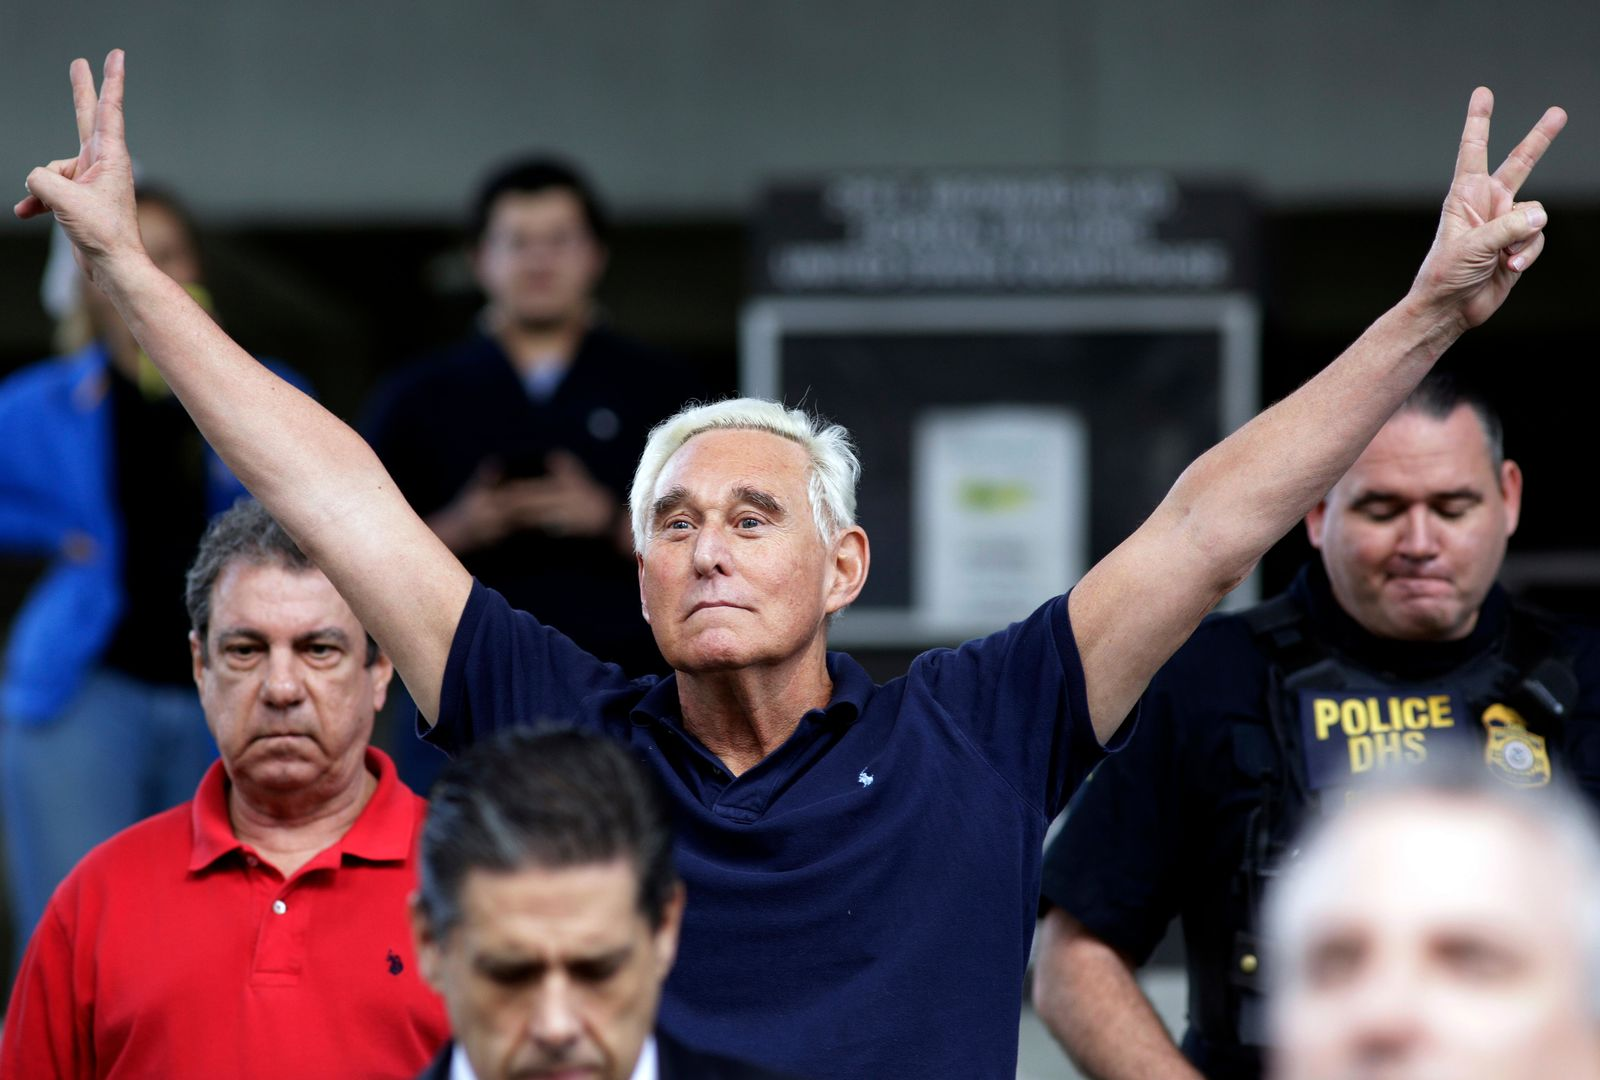 FILE - In this Jan. 25, 2019, file photo, former campaign adviser for President Donald Trump, Roger Stone walks out of the federal courthouse following a hearing in Fort Lauderdale, Fla.{ } (AP Photo/Lynne Sladky, File)